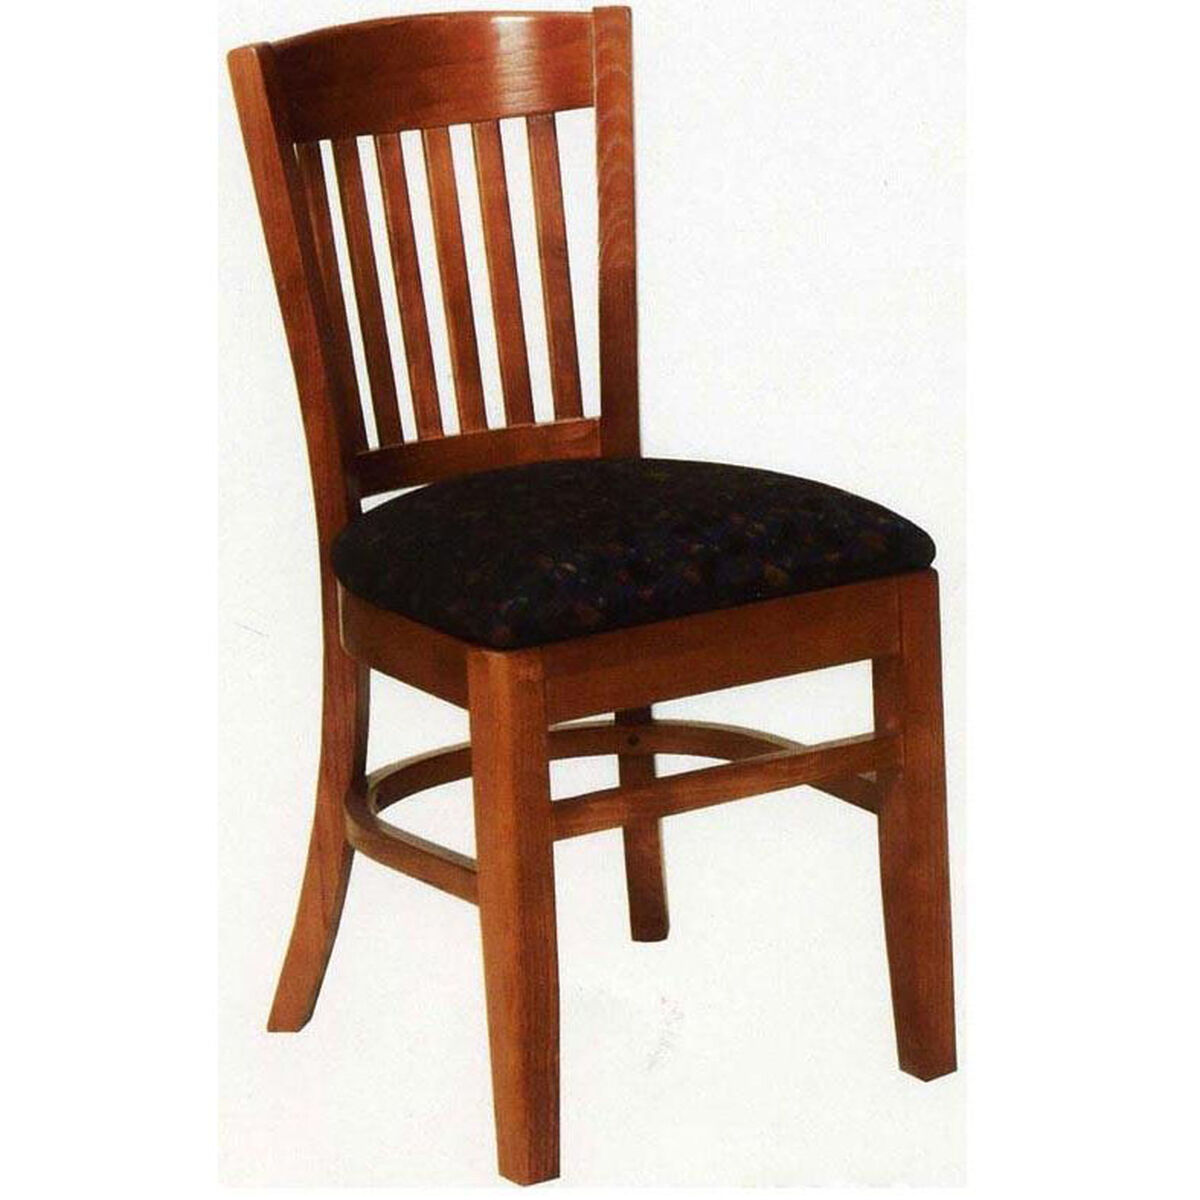 Upholstered side chair grade